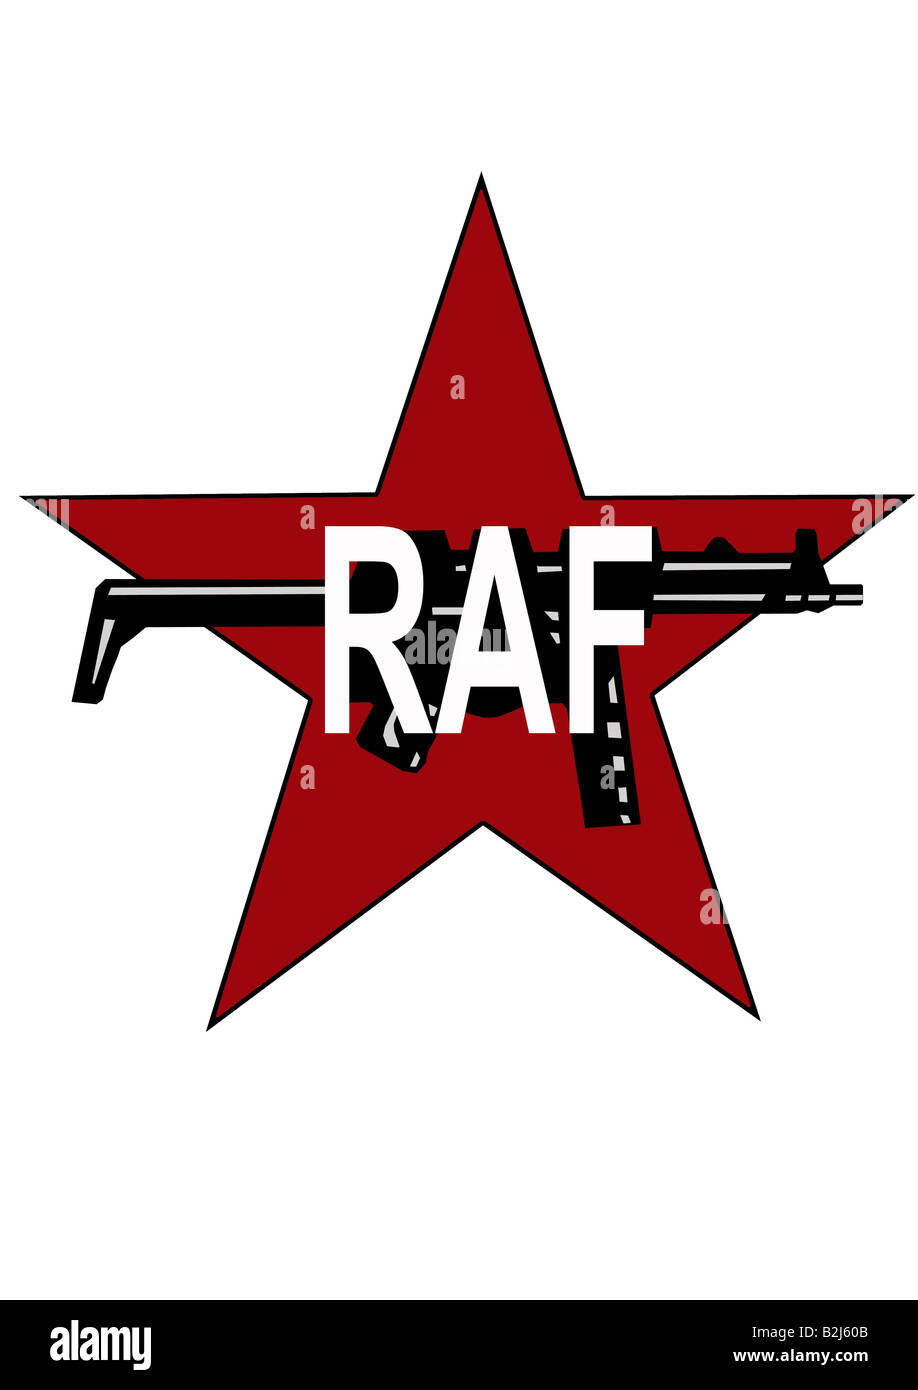 terrorism, symbol, emblem, Red Army Fraction (RAF), terror group, supmachine gun, supmachinegun, MG, Heckler and - Stock Image